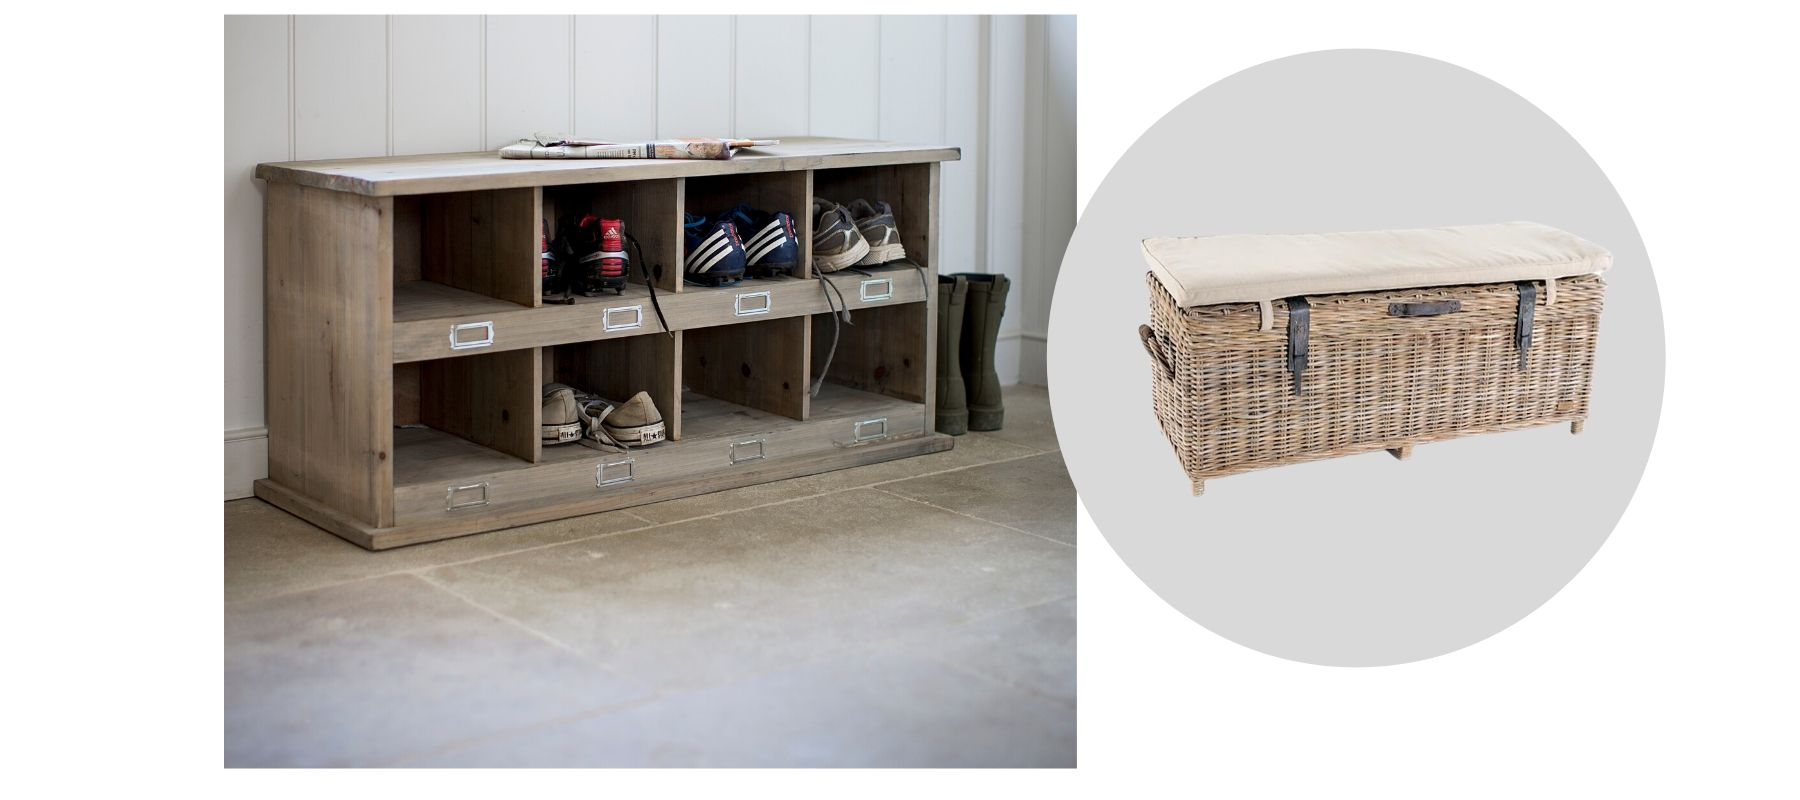 Wooden boot storage and wicker basket